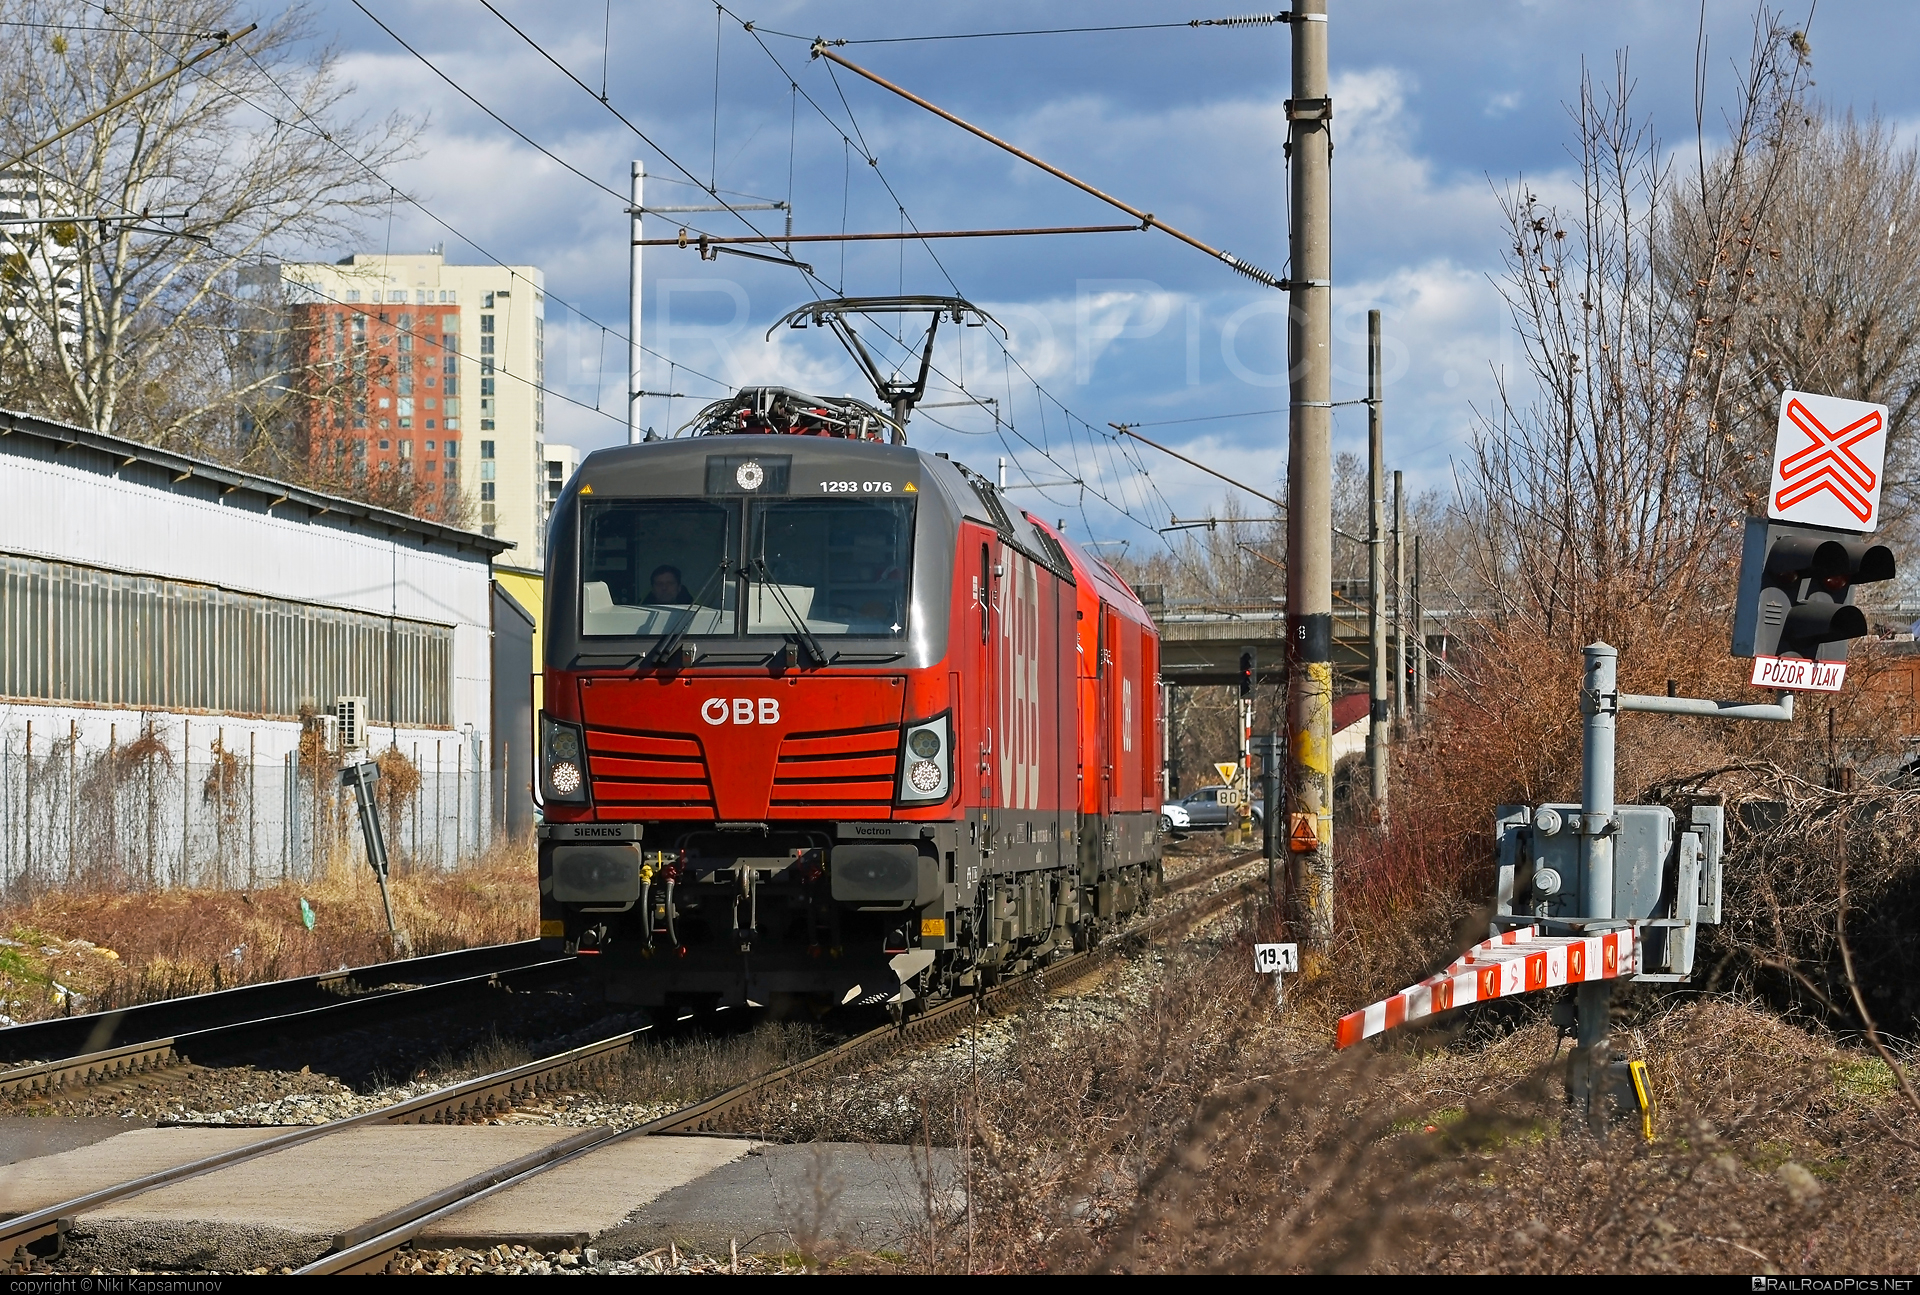 Siemens Vectron MS - 1293 076 operated by Rail Cargo Carrier – Slovakia s.r.o. #obb #osterreichischebundesbahnen #rccsk #siemens #siemensvectron #siemensvectronms #vectron #vectronms #wssk